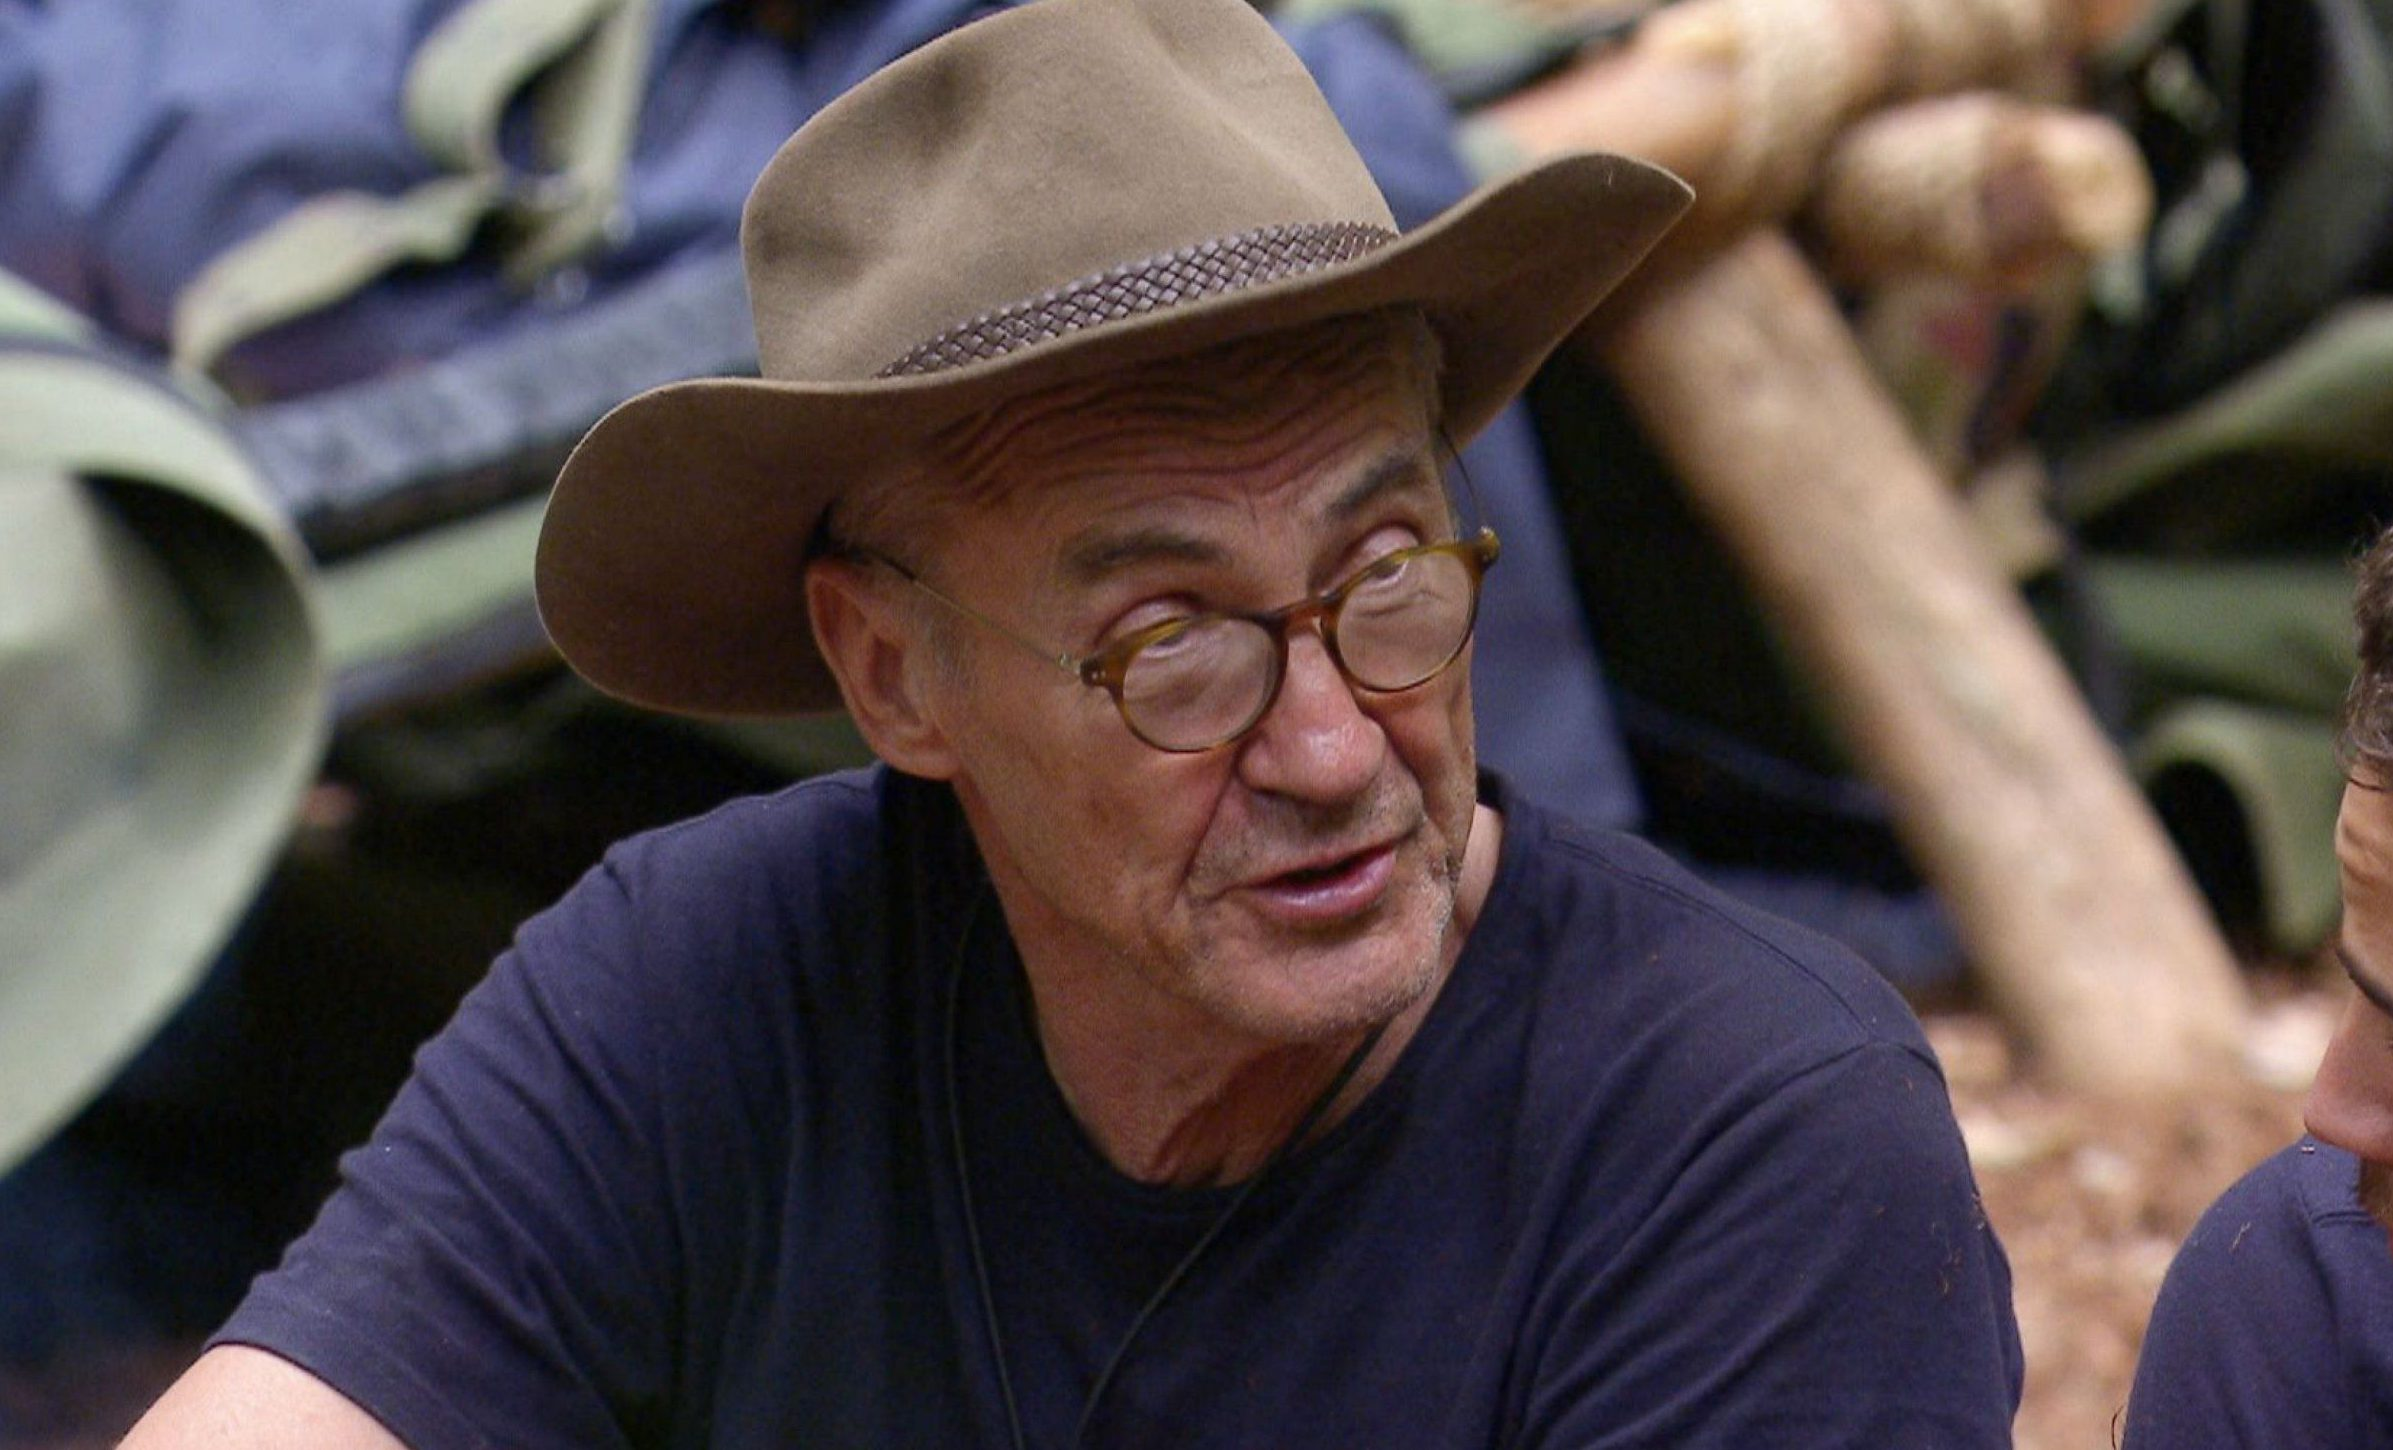 ***EMBARGO, NOT TO BE USED BEFORE 22:50 GMT, 26 Nov 2016 - EDITORIAL USE ONLY - NO MERCHANDISING*** Mandatory Credit: Photo by ITV/REX/Shutterstock (7524329y) Camp life - Larry Lamb 'I'm a Celebrity...Get Me Out of Here!' TV Show, Australia - 26 Nov 2016